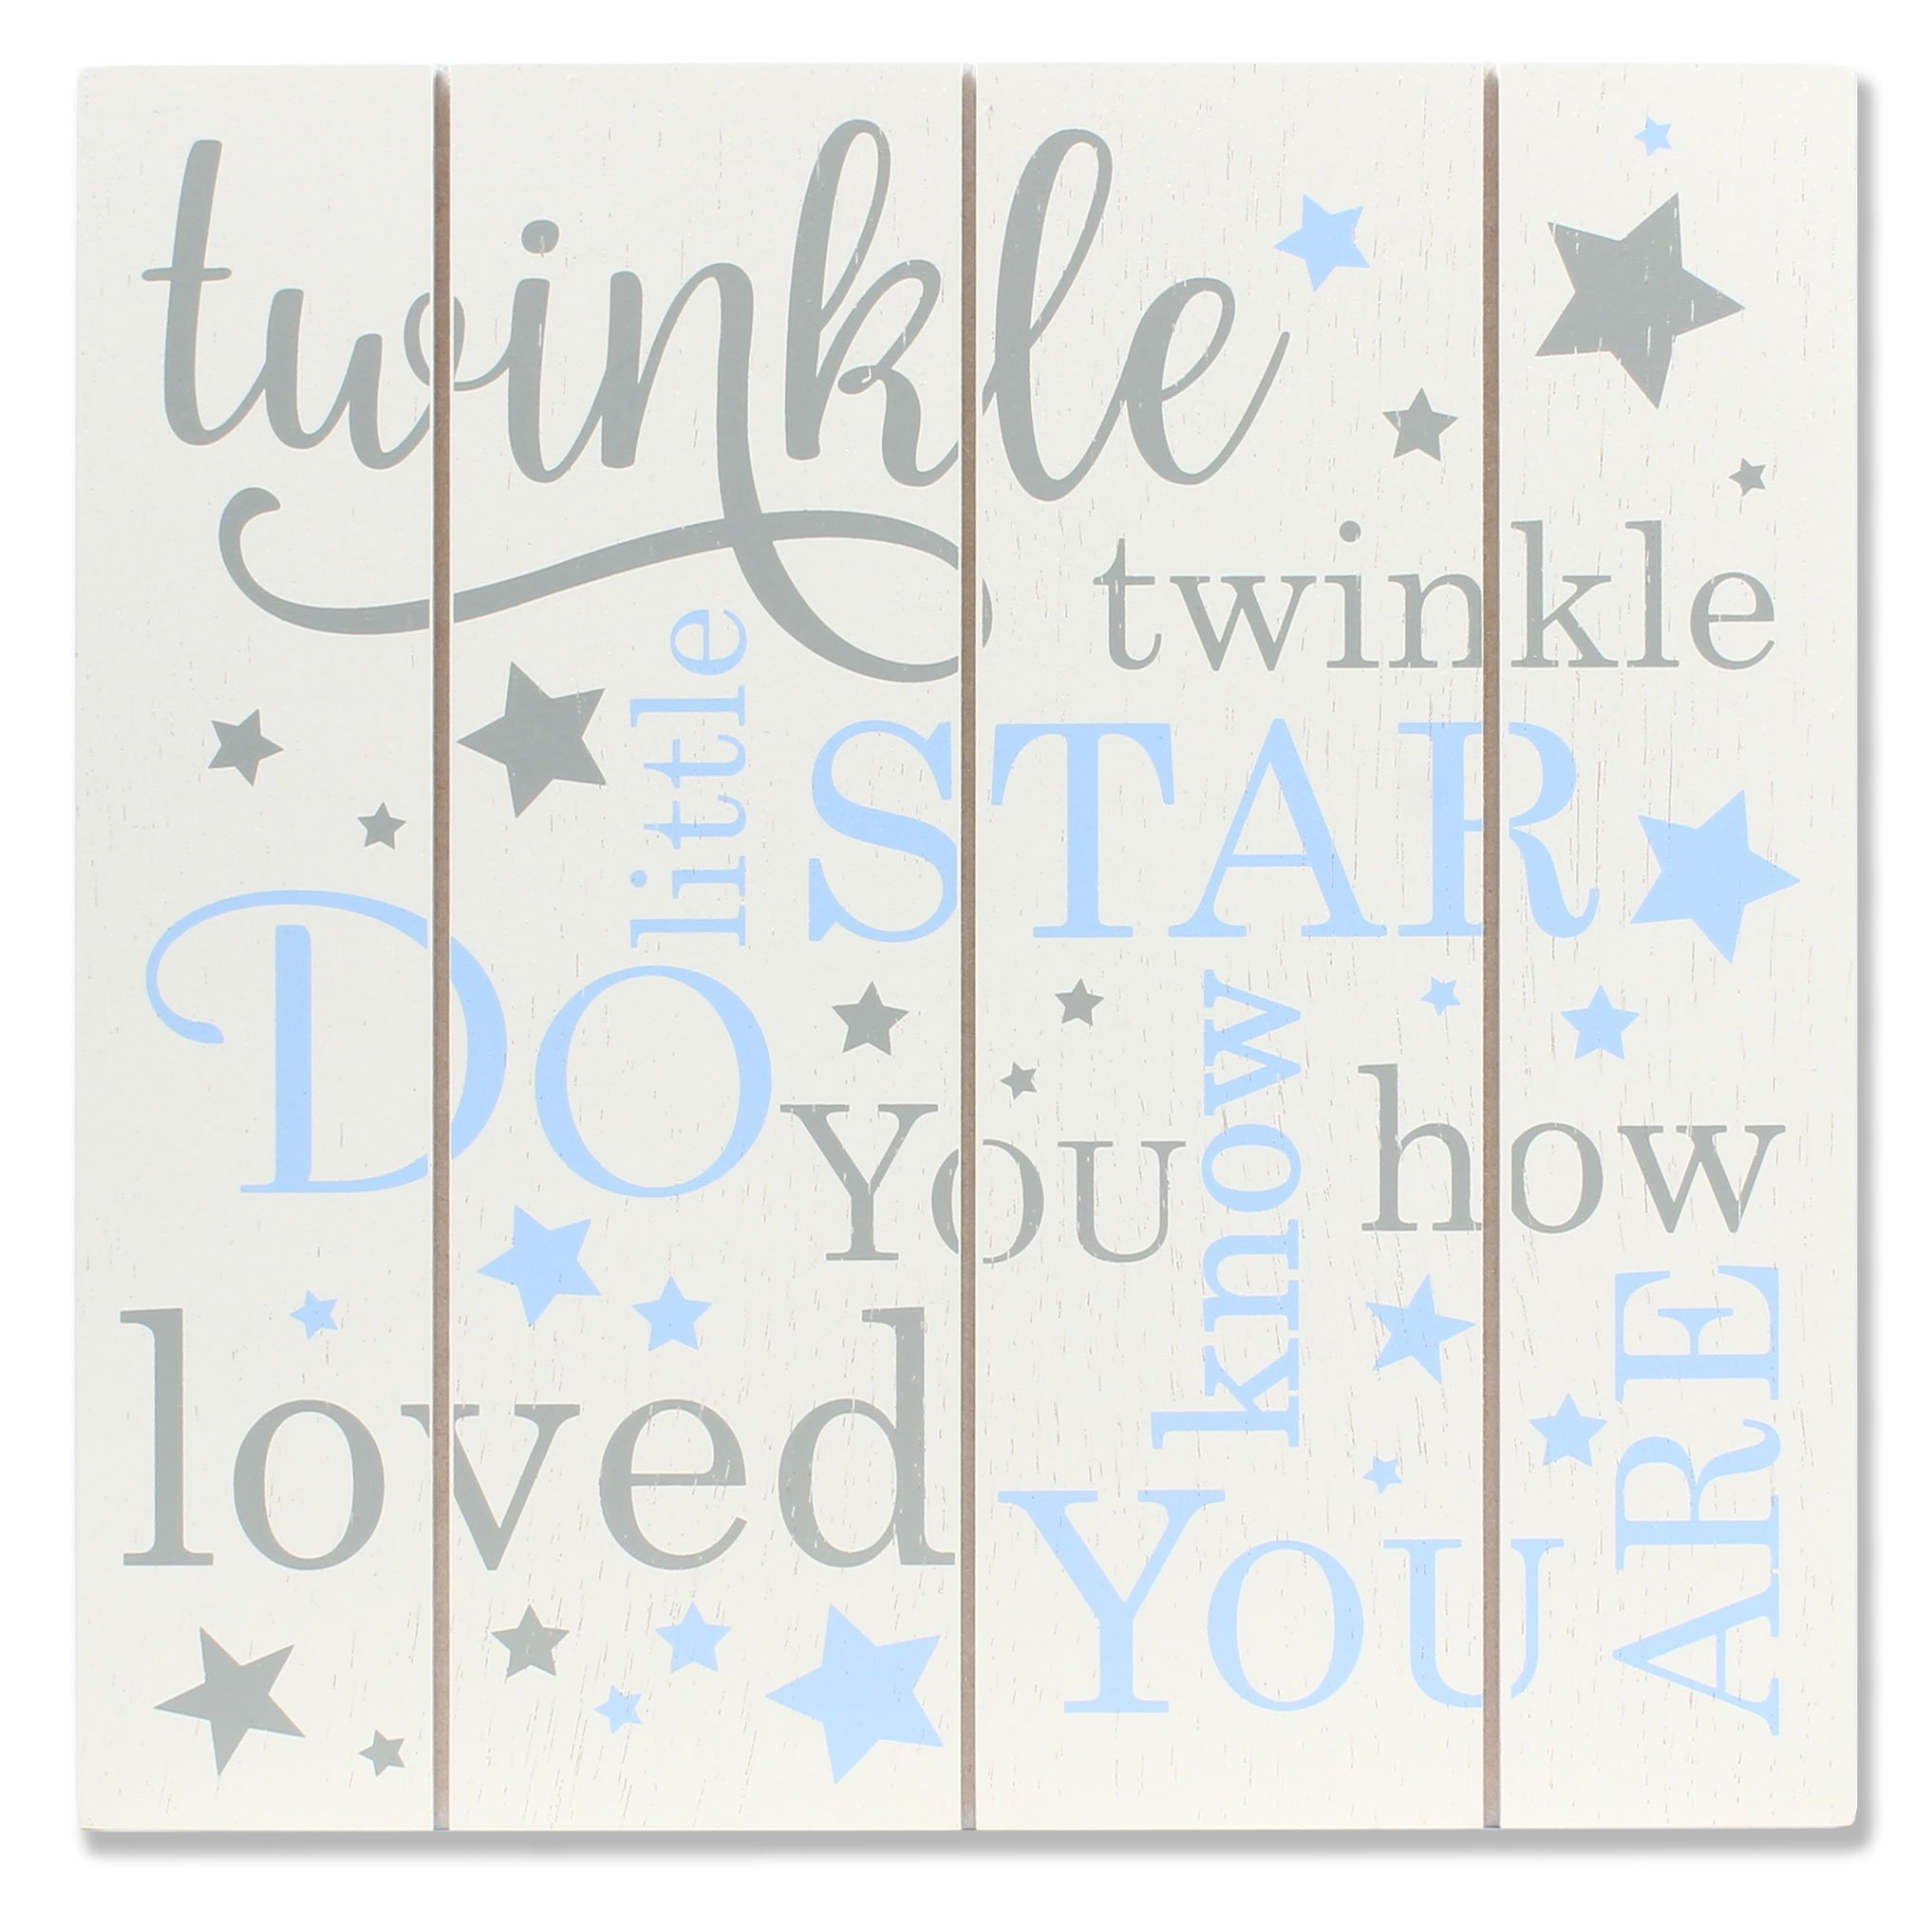 Lawrence Frames 9x9 Distressed White and Blue Wood Twinkle Panel Sign